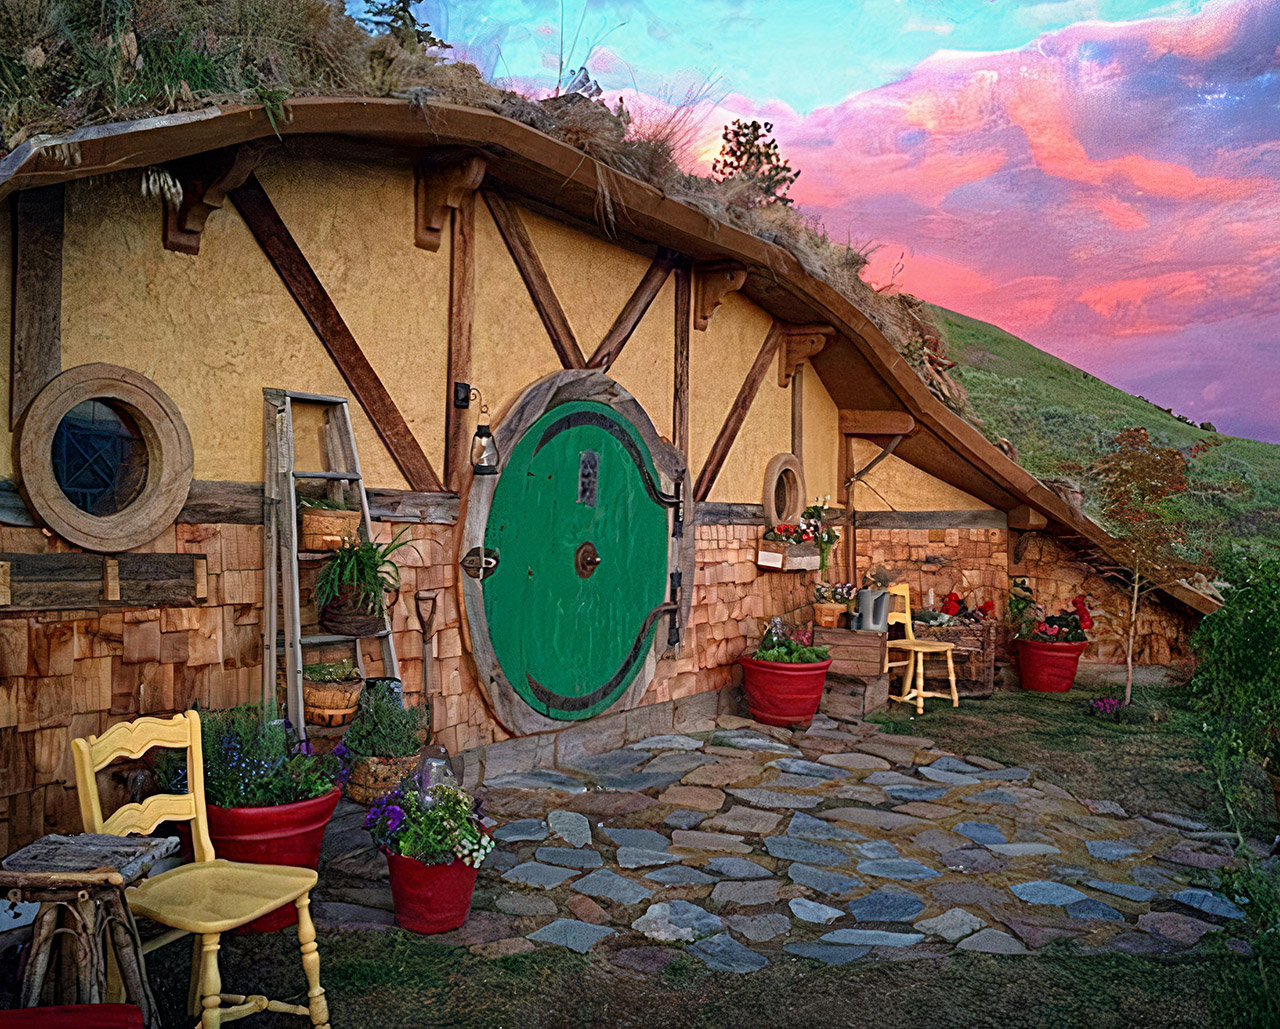 The Hobbit House Washington Airbnb